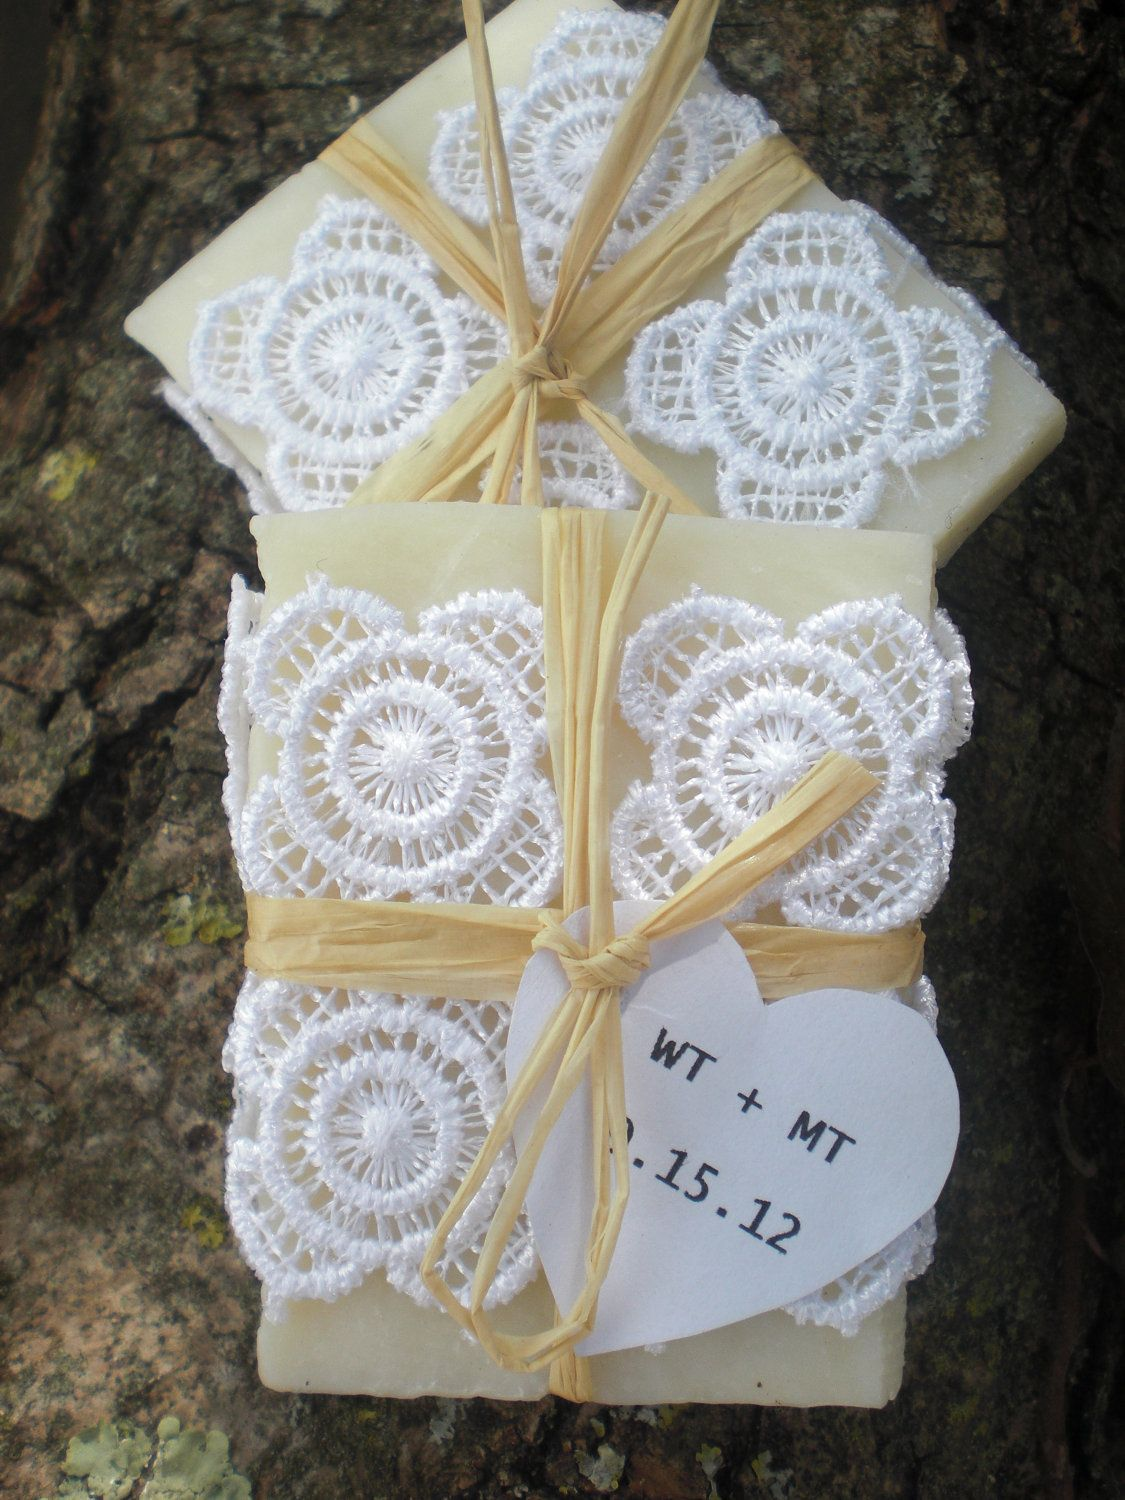 Wedding favors all natural soaps wrapped in lace weddingbox